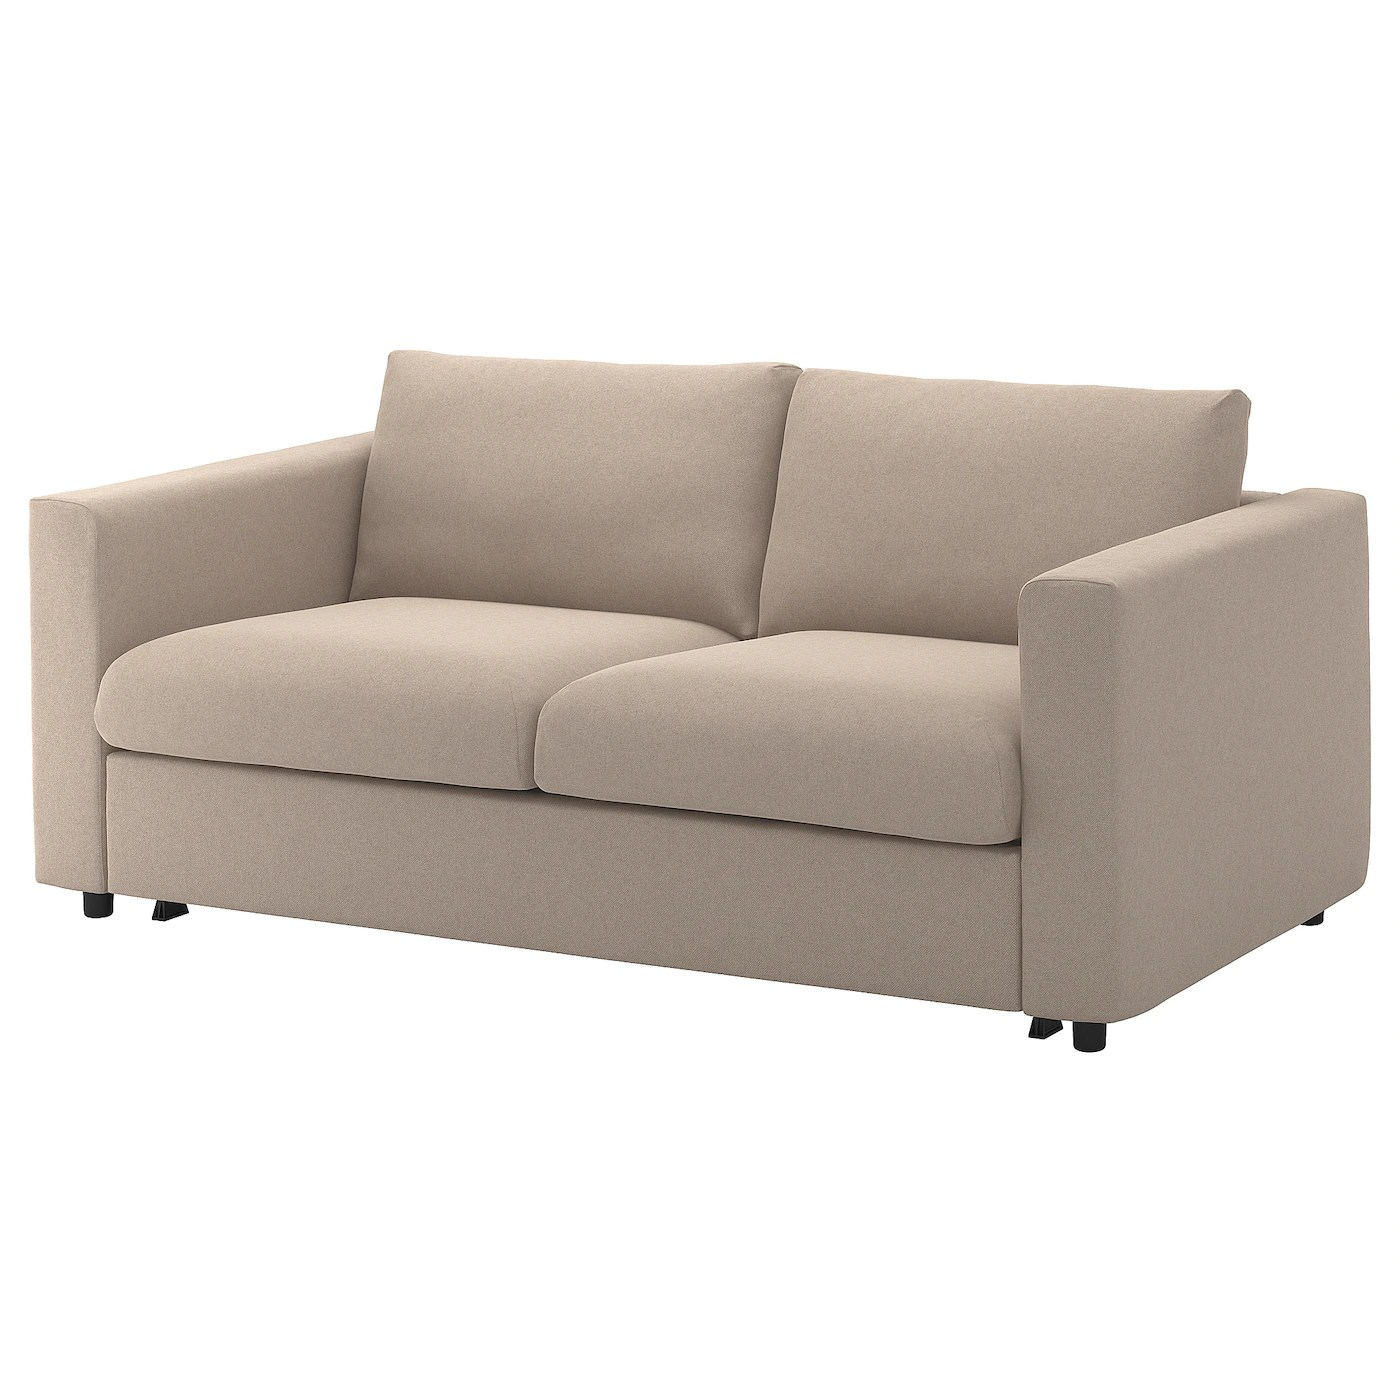 Foldable Bed Chair Sofa Beds Corner Sofa Beds Futons Ikea